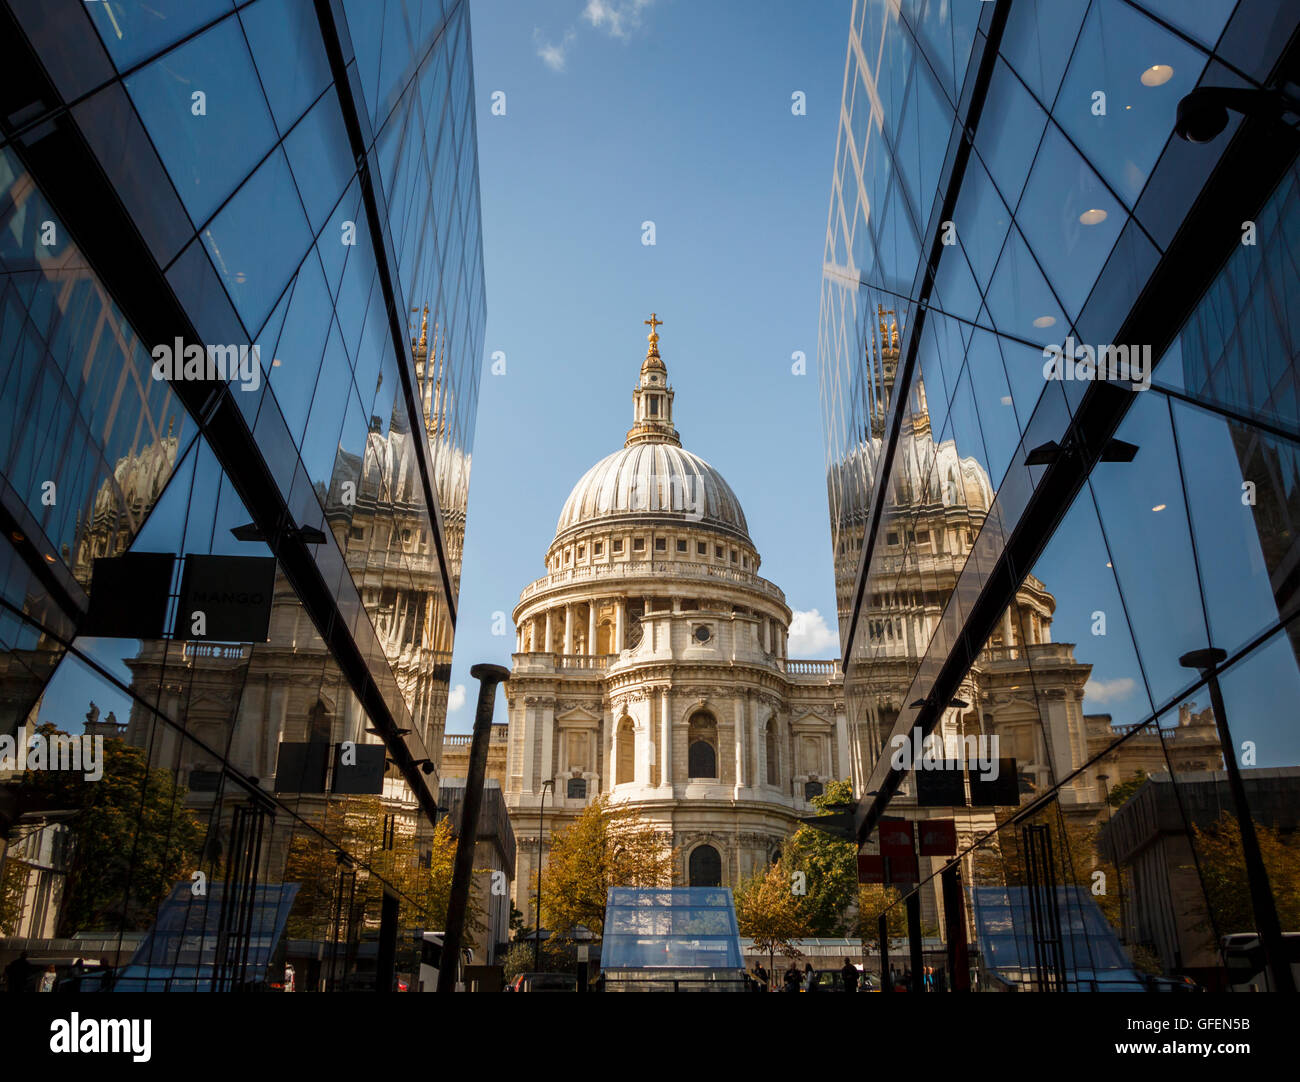 Low angle shot of St Pauls Cathedral, with reflection in the glass of 2 modern office / retail buildings - Stock Image